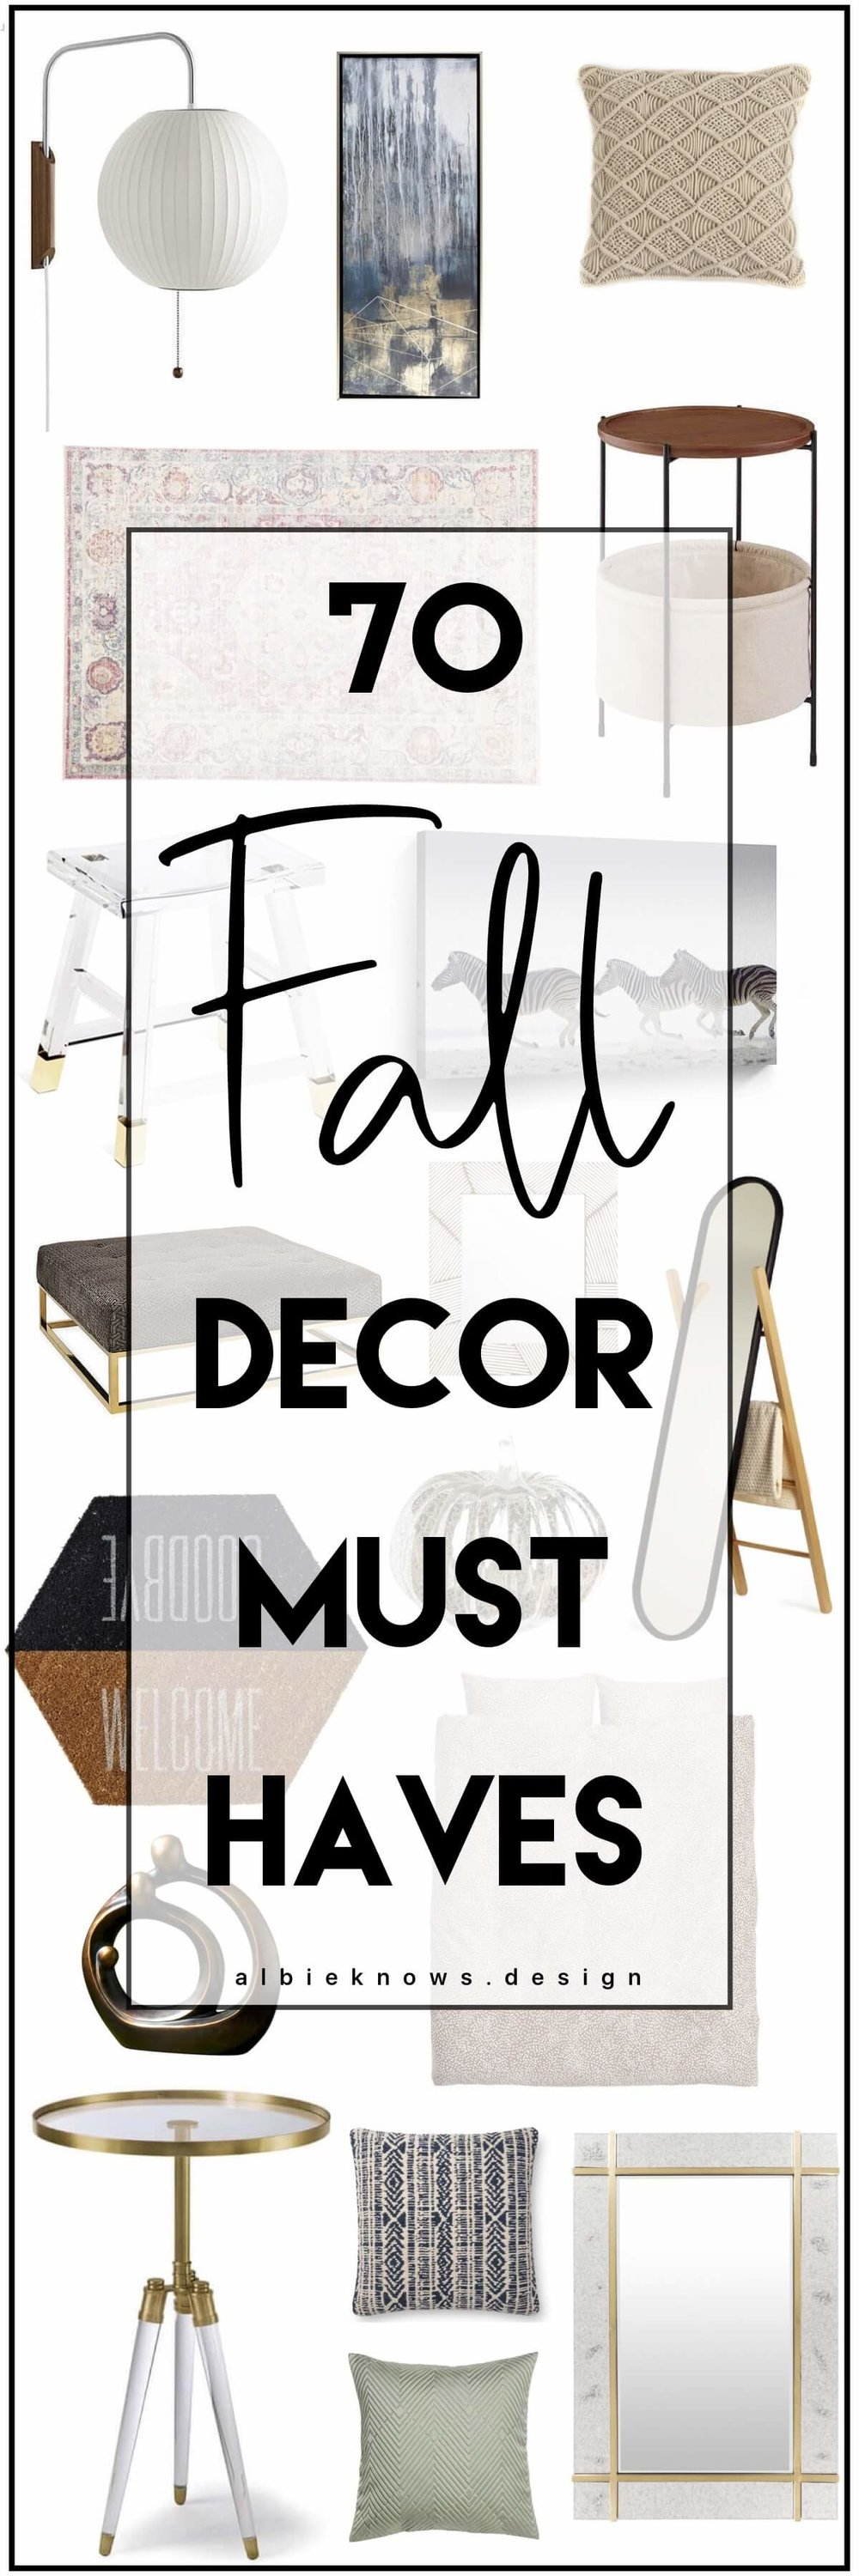 PIN FOR GOOD VIBES | ALBIE KNOWS FALL DECOR WISHLIST